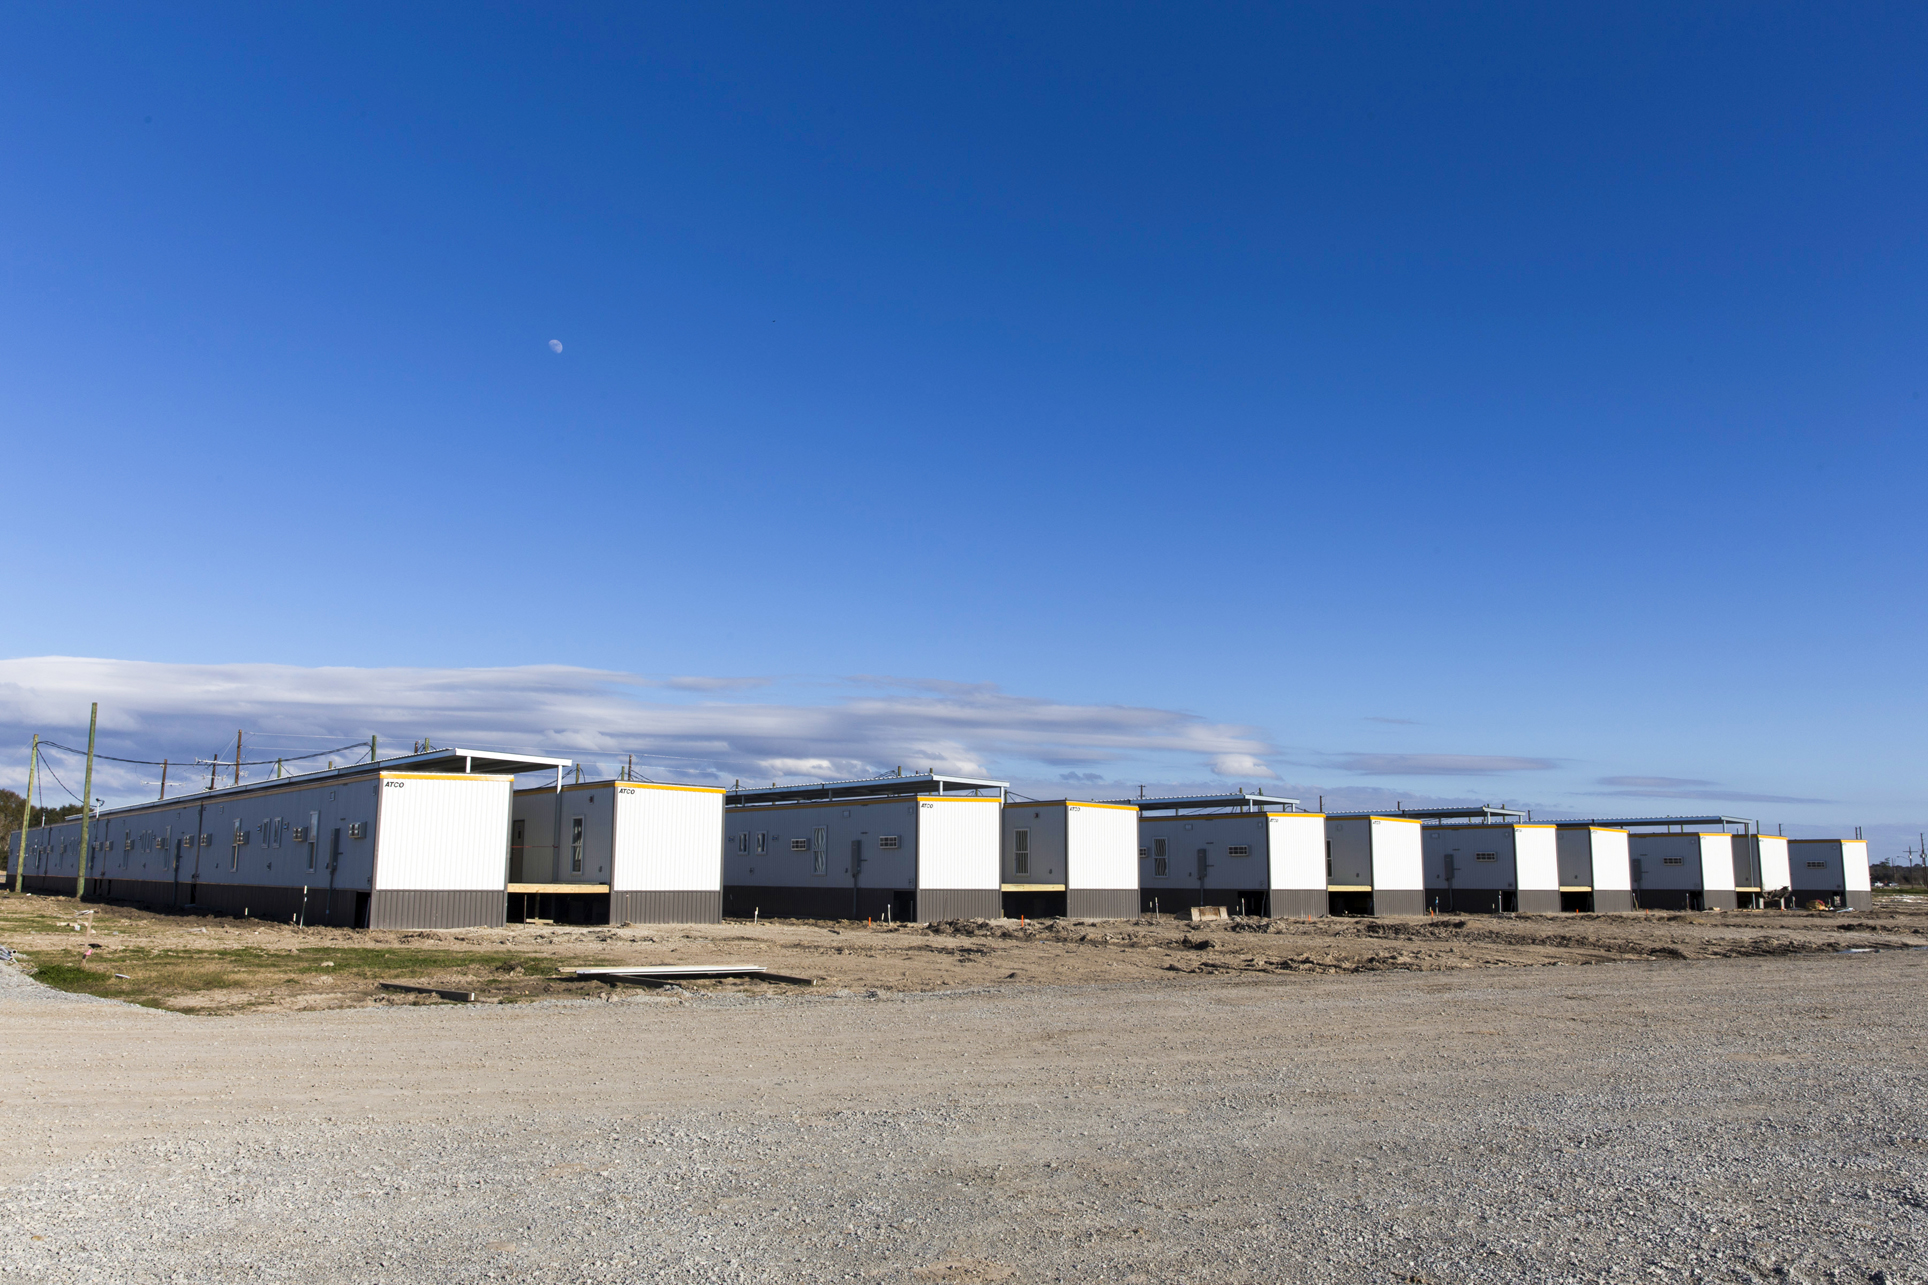 IT'S ONLY TEMPORARY: Modular housing units at the Moss Lake Village worker village, under construction near Southland Airfield in Sulphur. (Photo by Lee Celano)